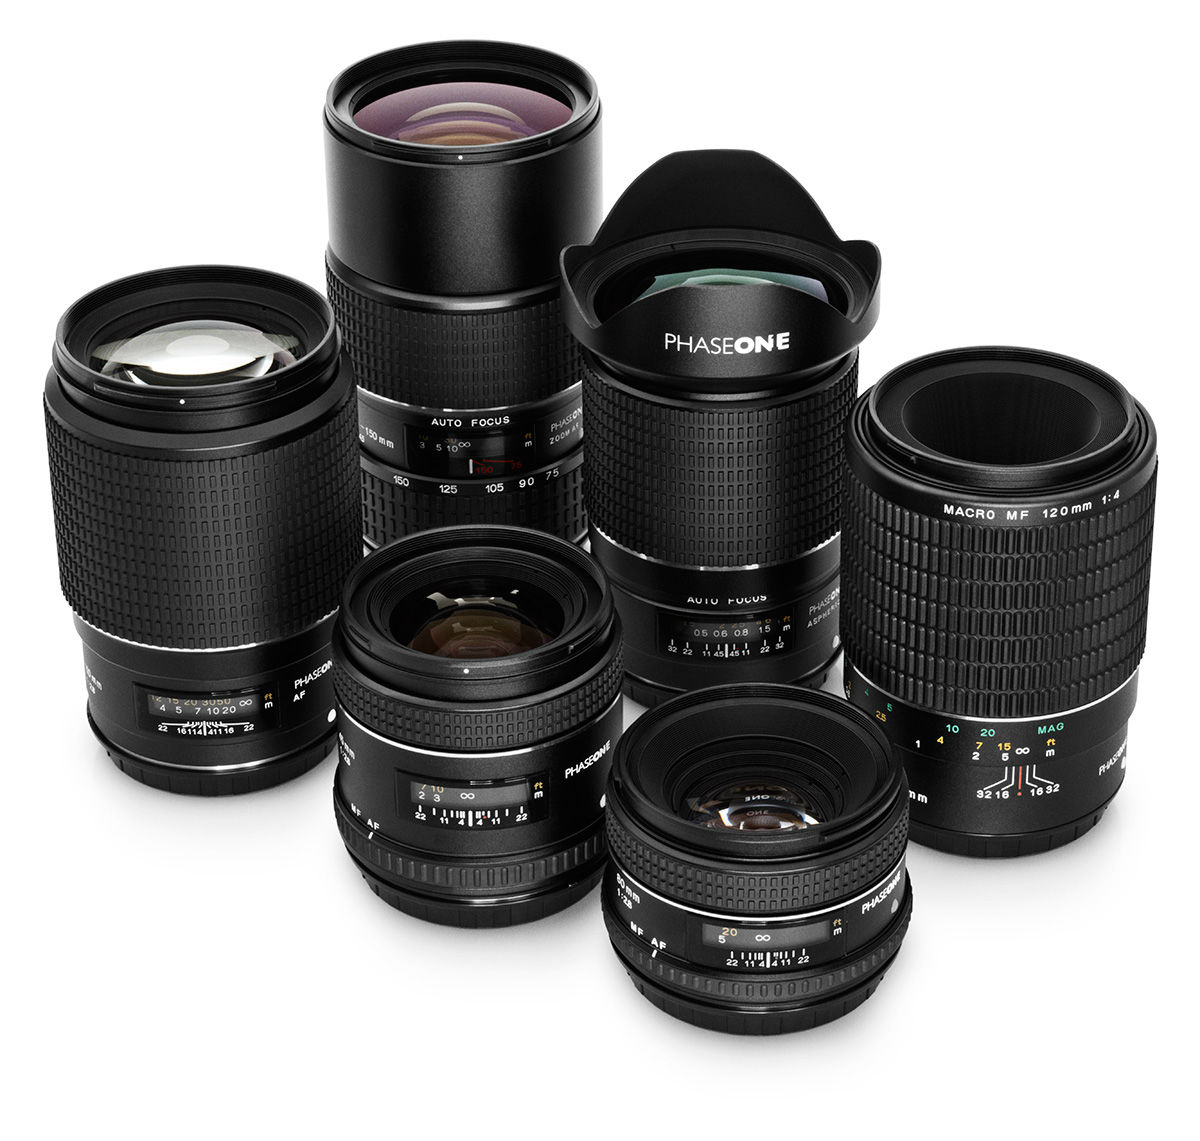 phase one xf camera lenses image